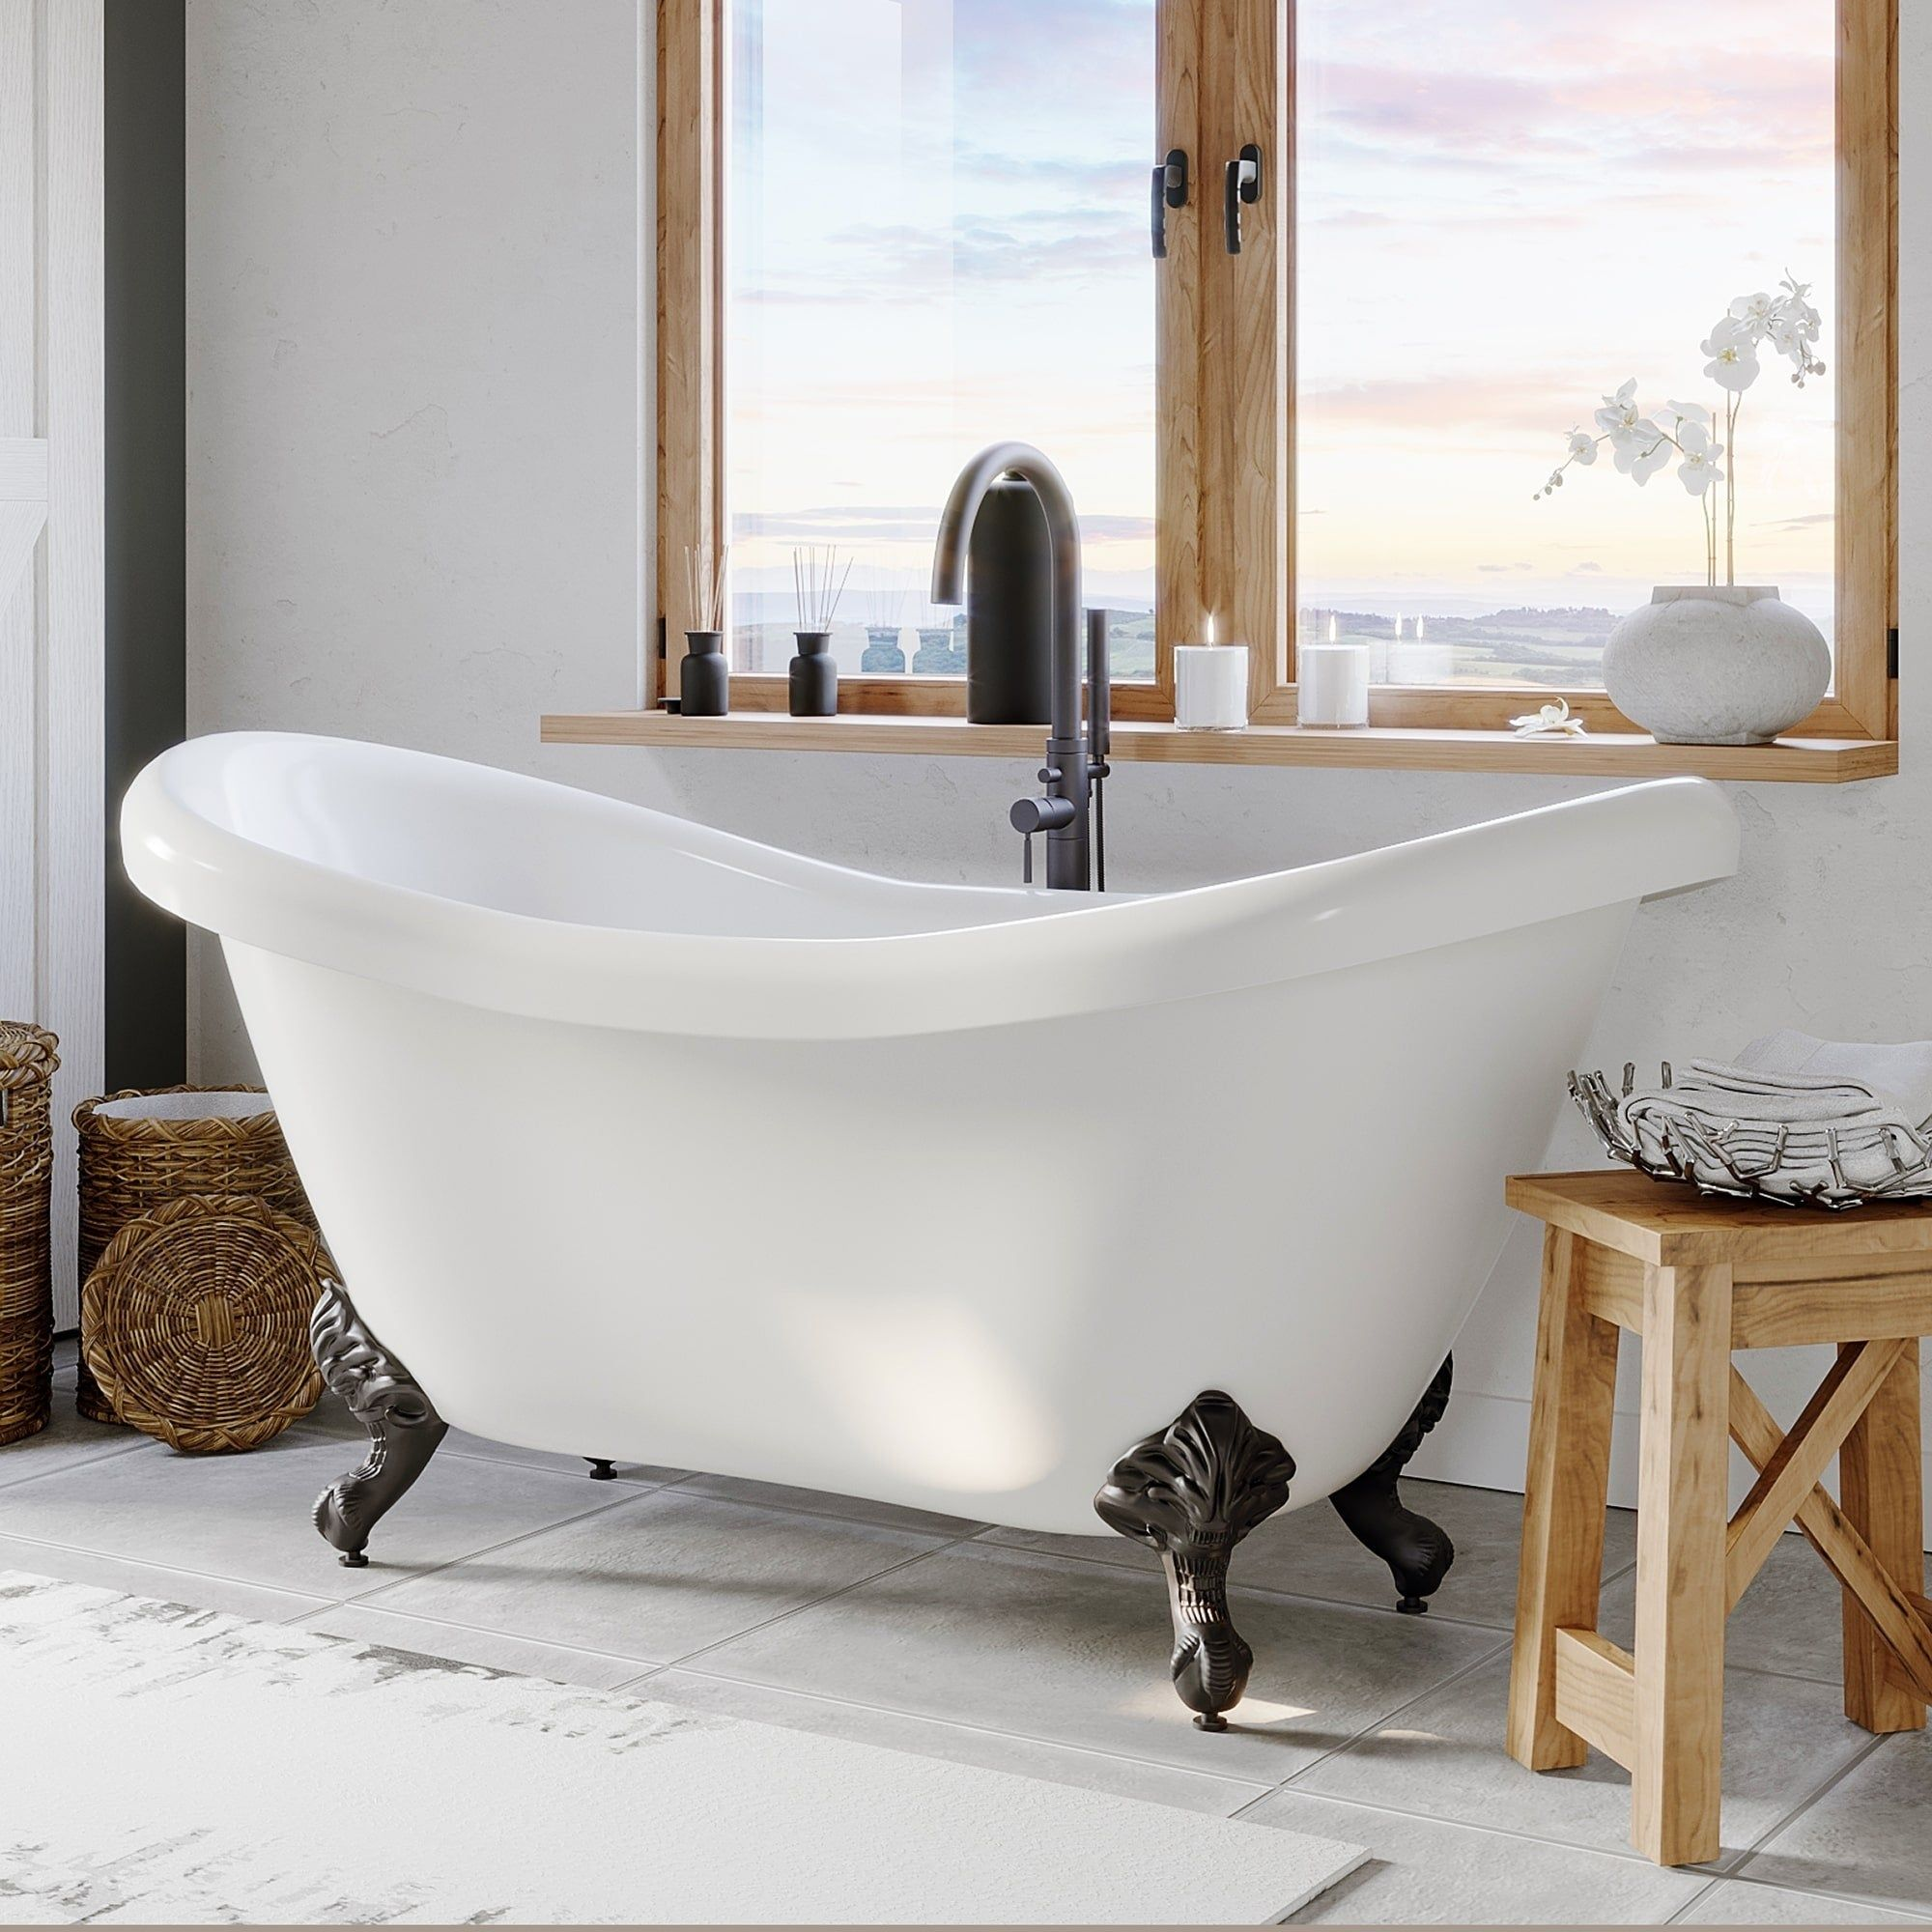 Double Slipper Clawfoot Tub Oil Rubbed Bronze Plumbing And Feet